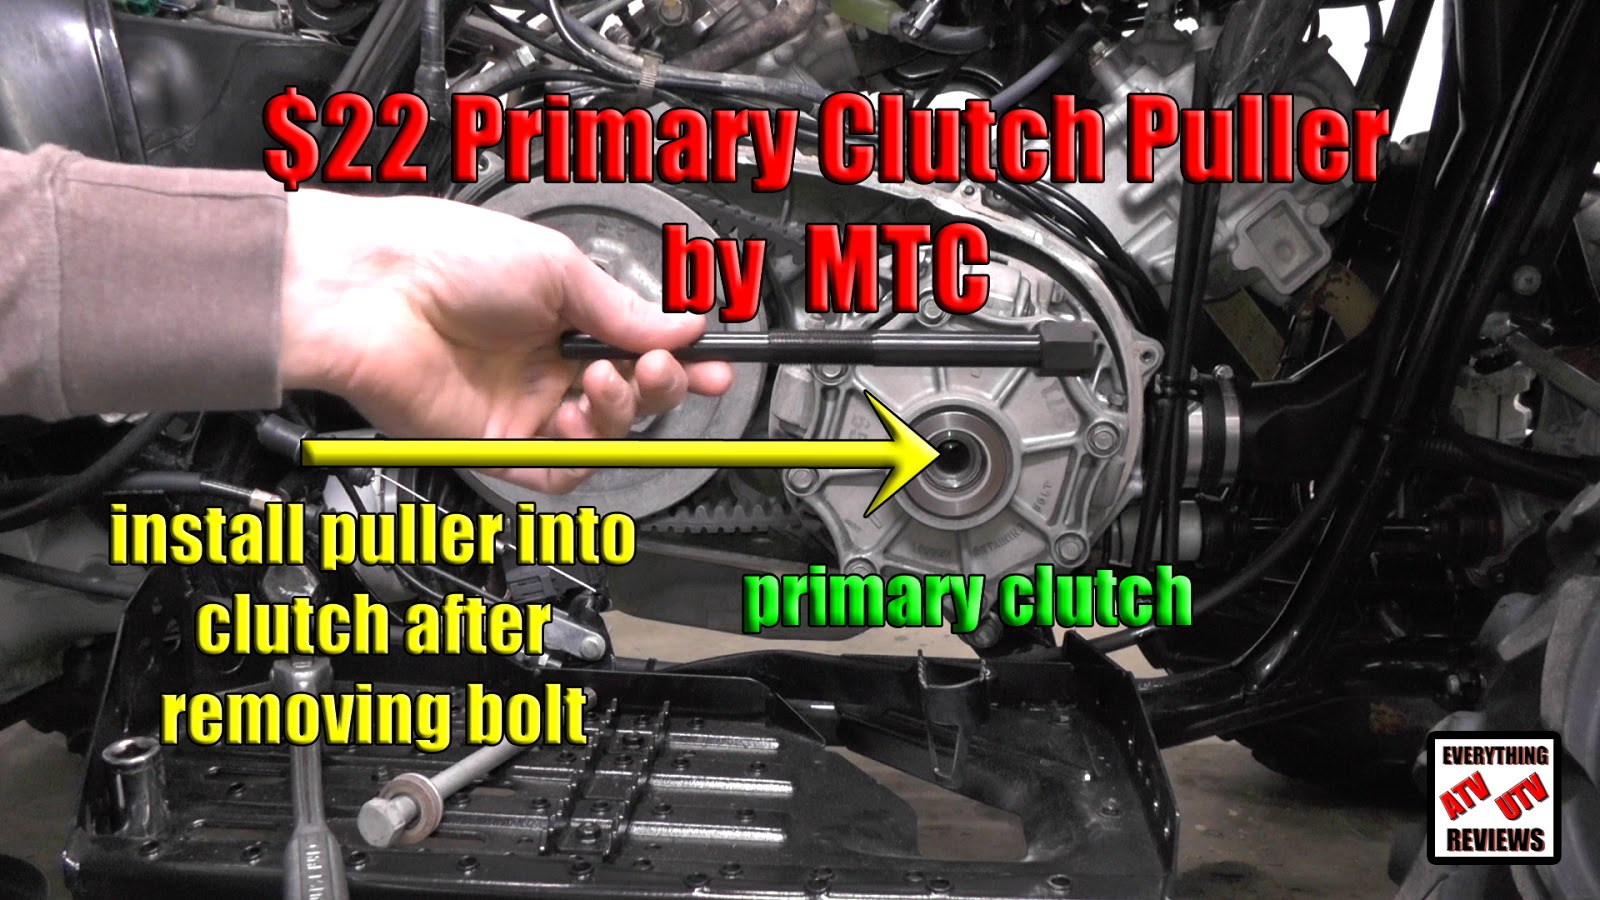 EVERYTHING ATV UTV REVIEWS: Primary Clutch Puller Tool to change